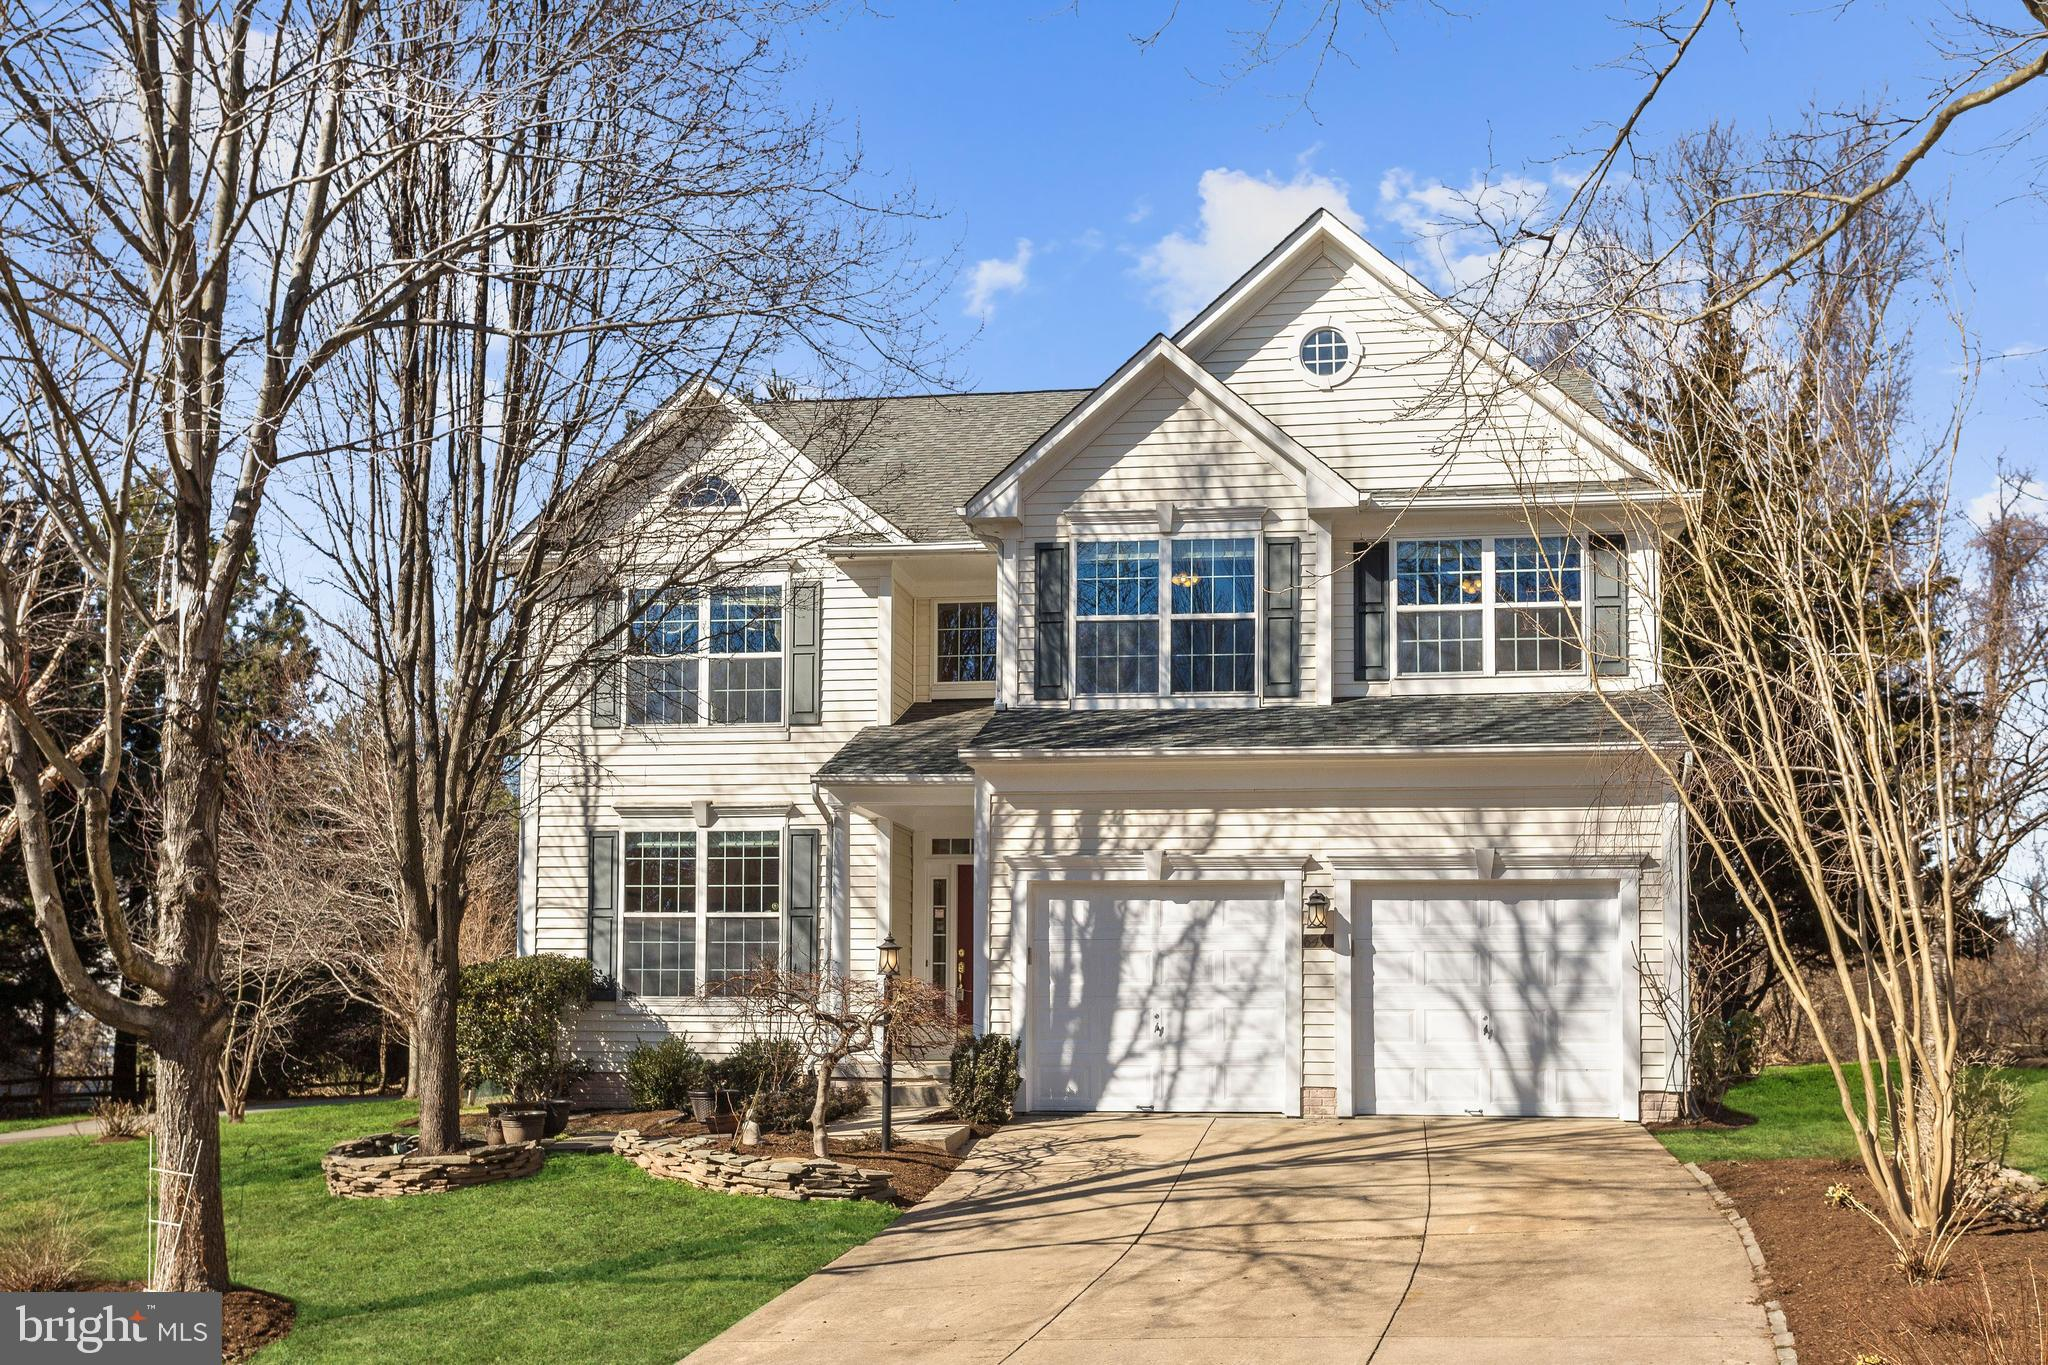 6413 RIPE APPLE LANE, COLUMBIA, MD 21044